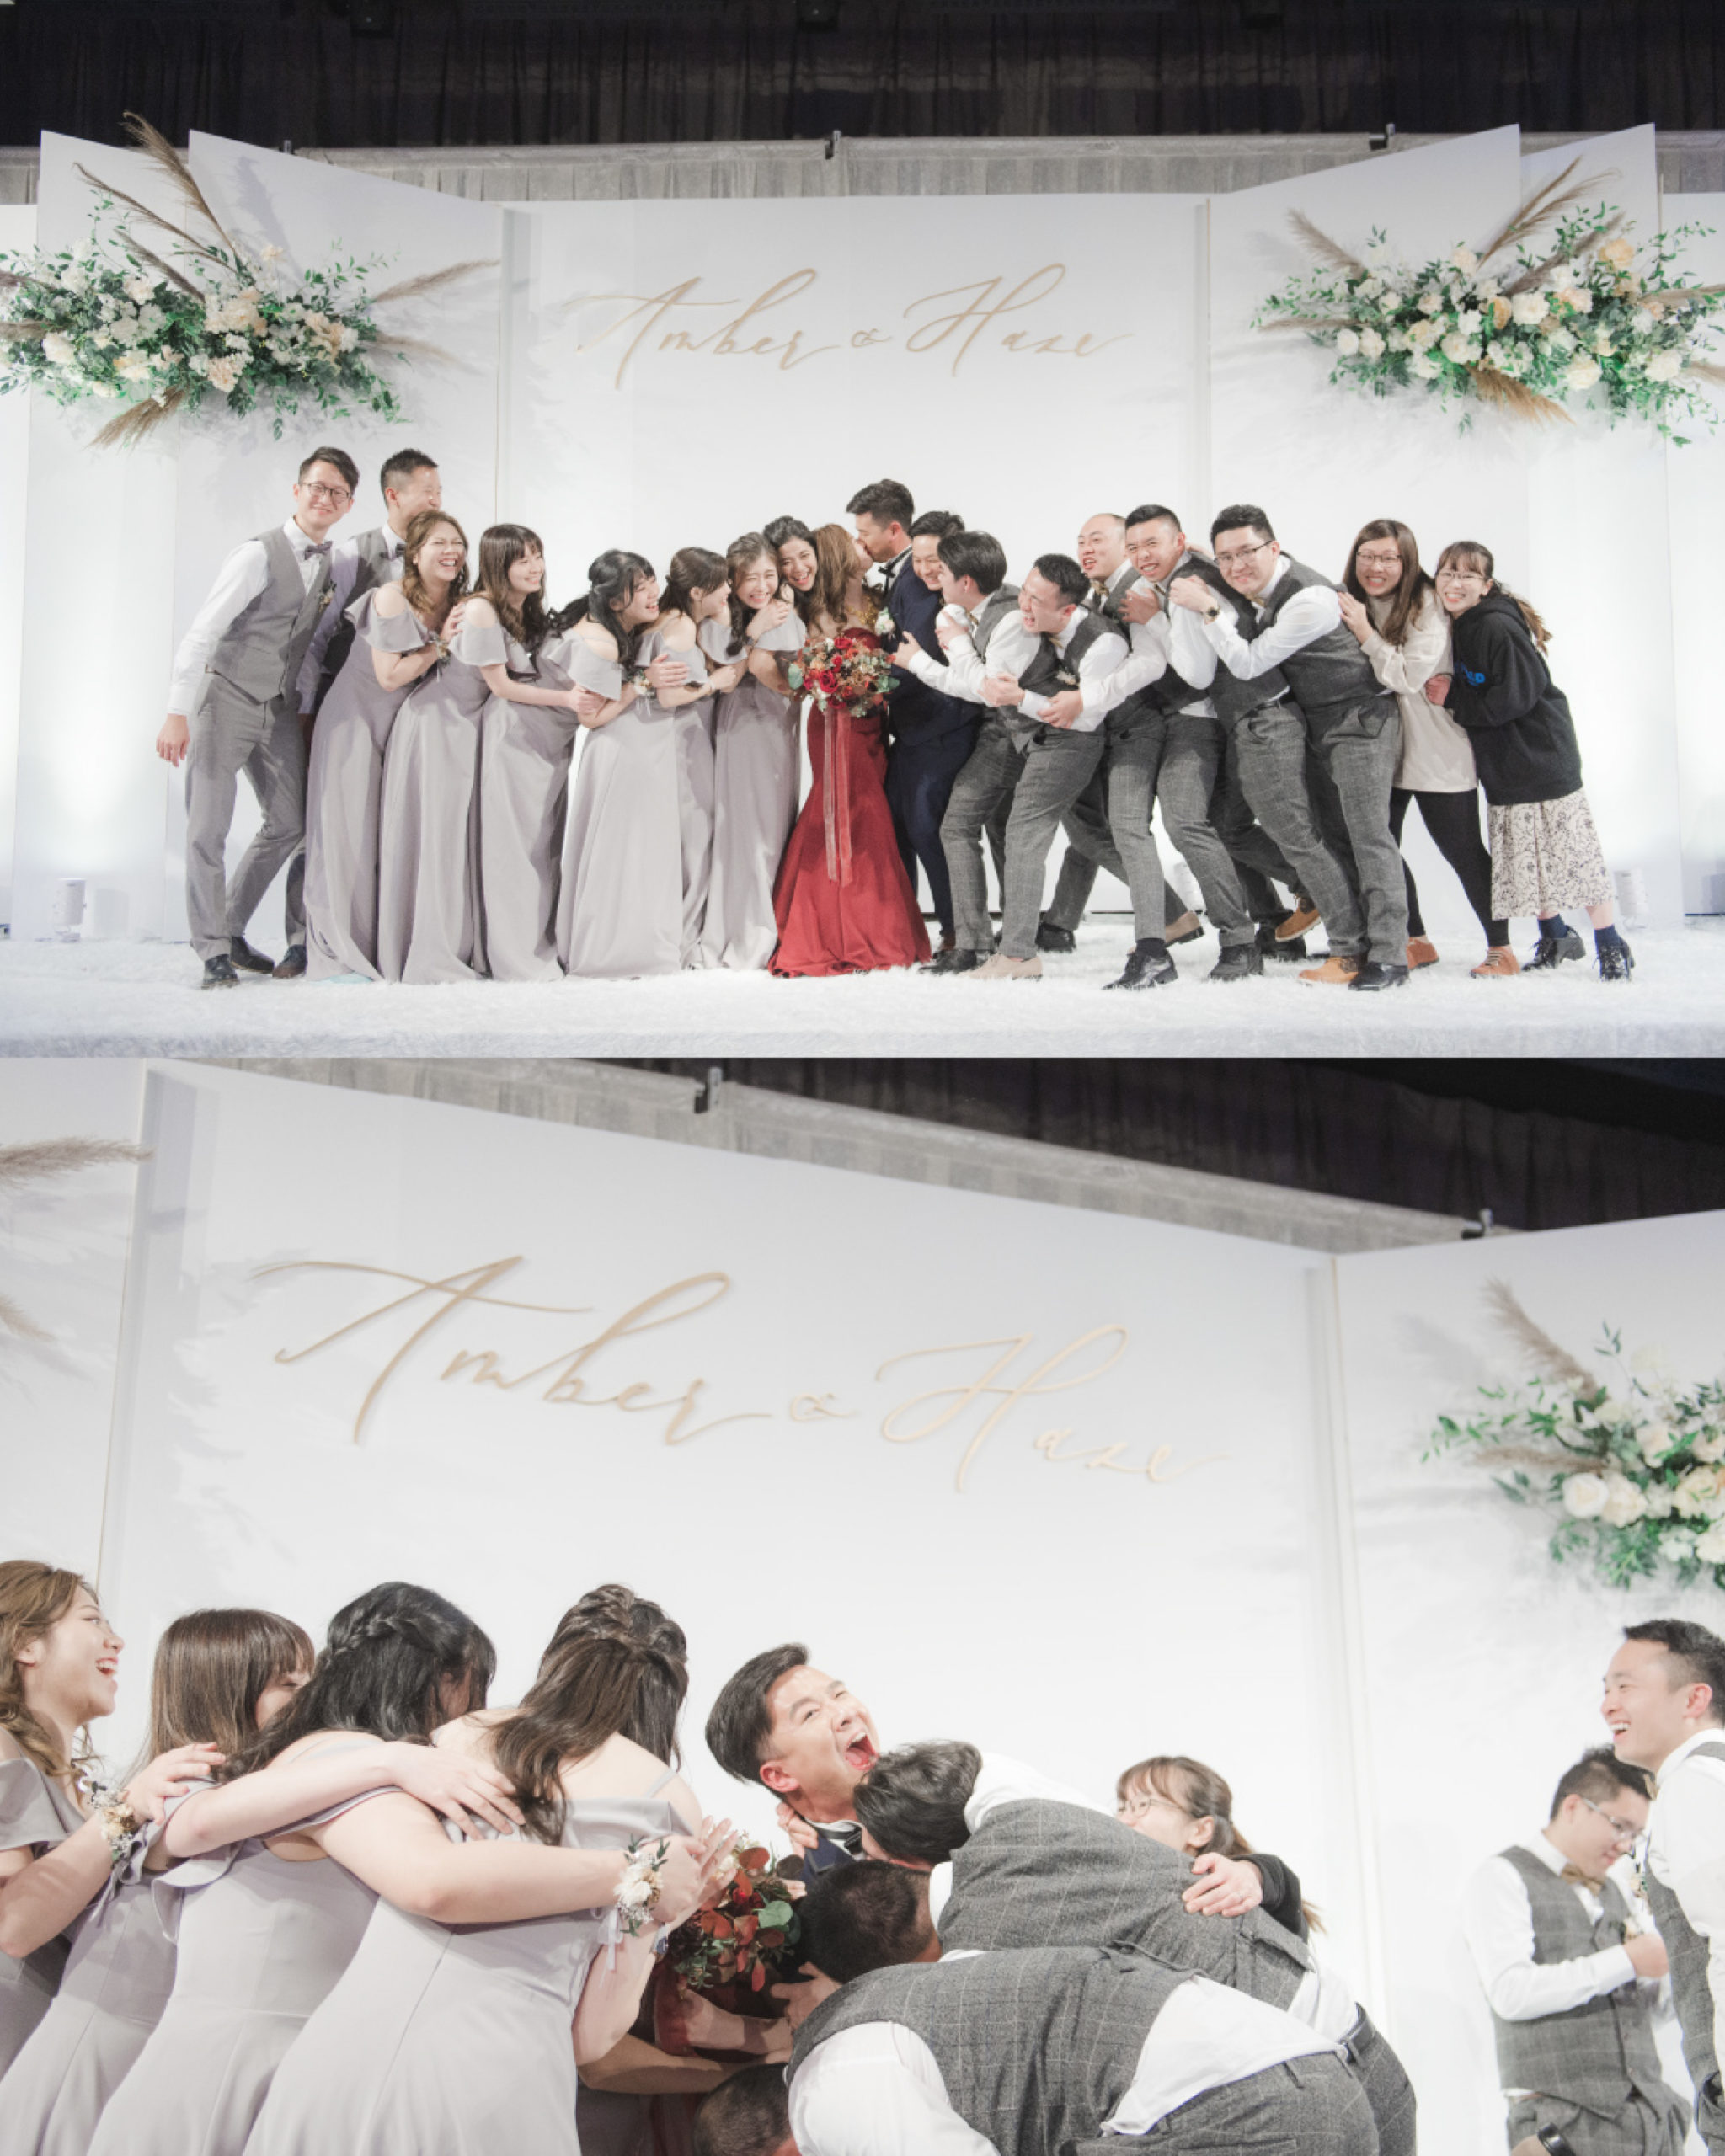 bridesmaid and groom with couples in front of the wedding backdrop